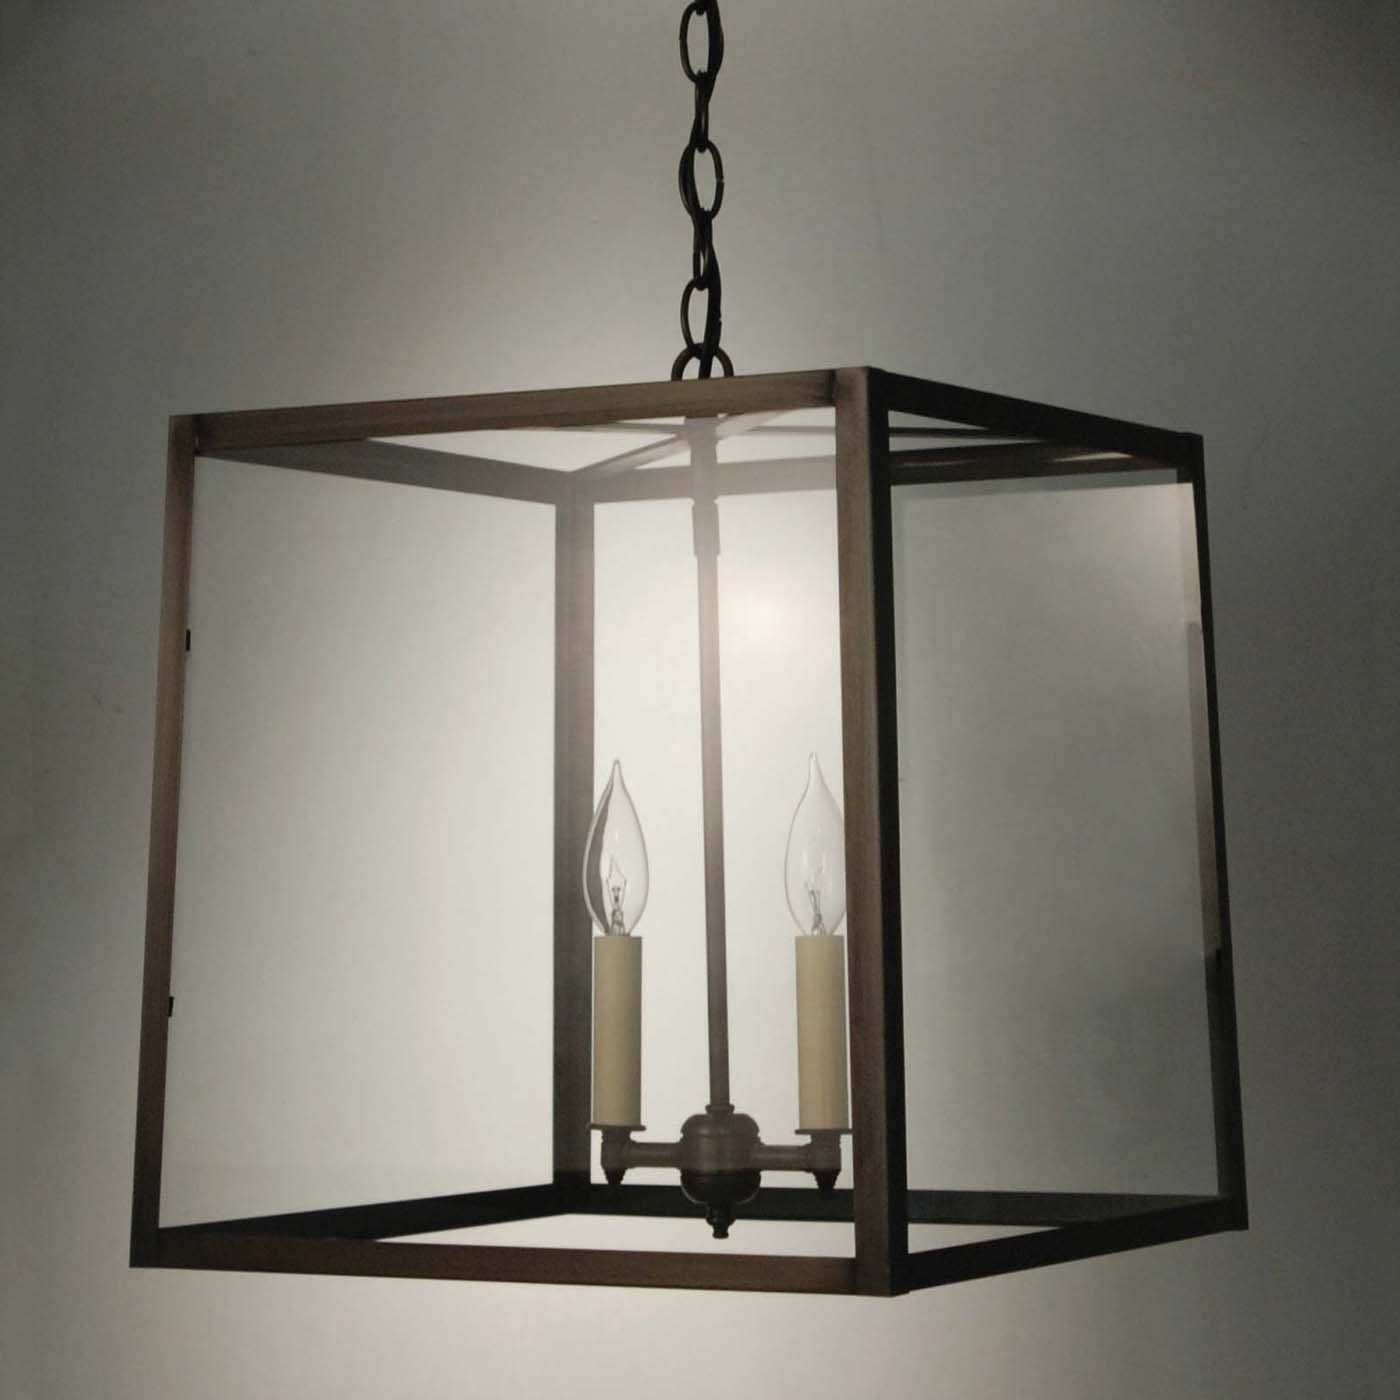 15 Inches Wide Northeast Lantern ST1415 Transitional Square Trapezoid Hanging Pendant Light